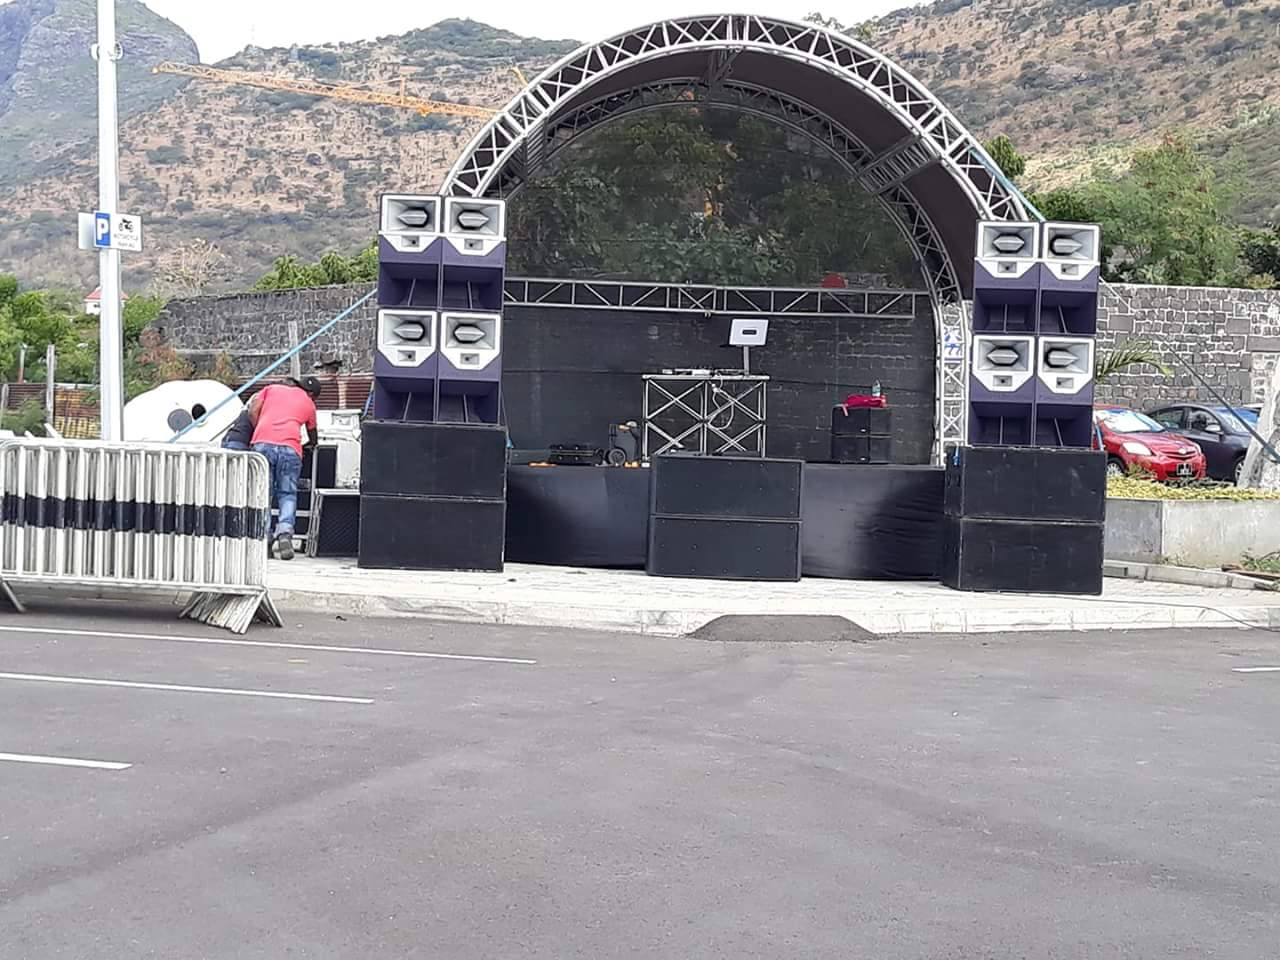 Sanway R2 full range speaker bring an exciting outdoor music concert in Mauritius